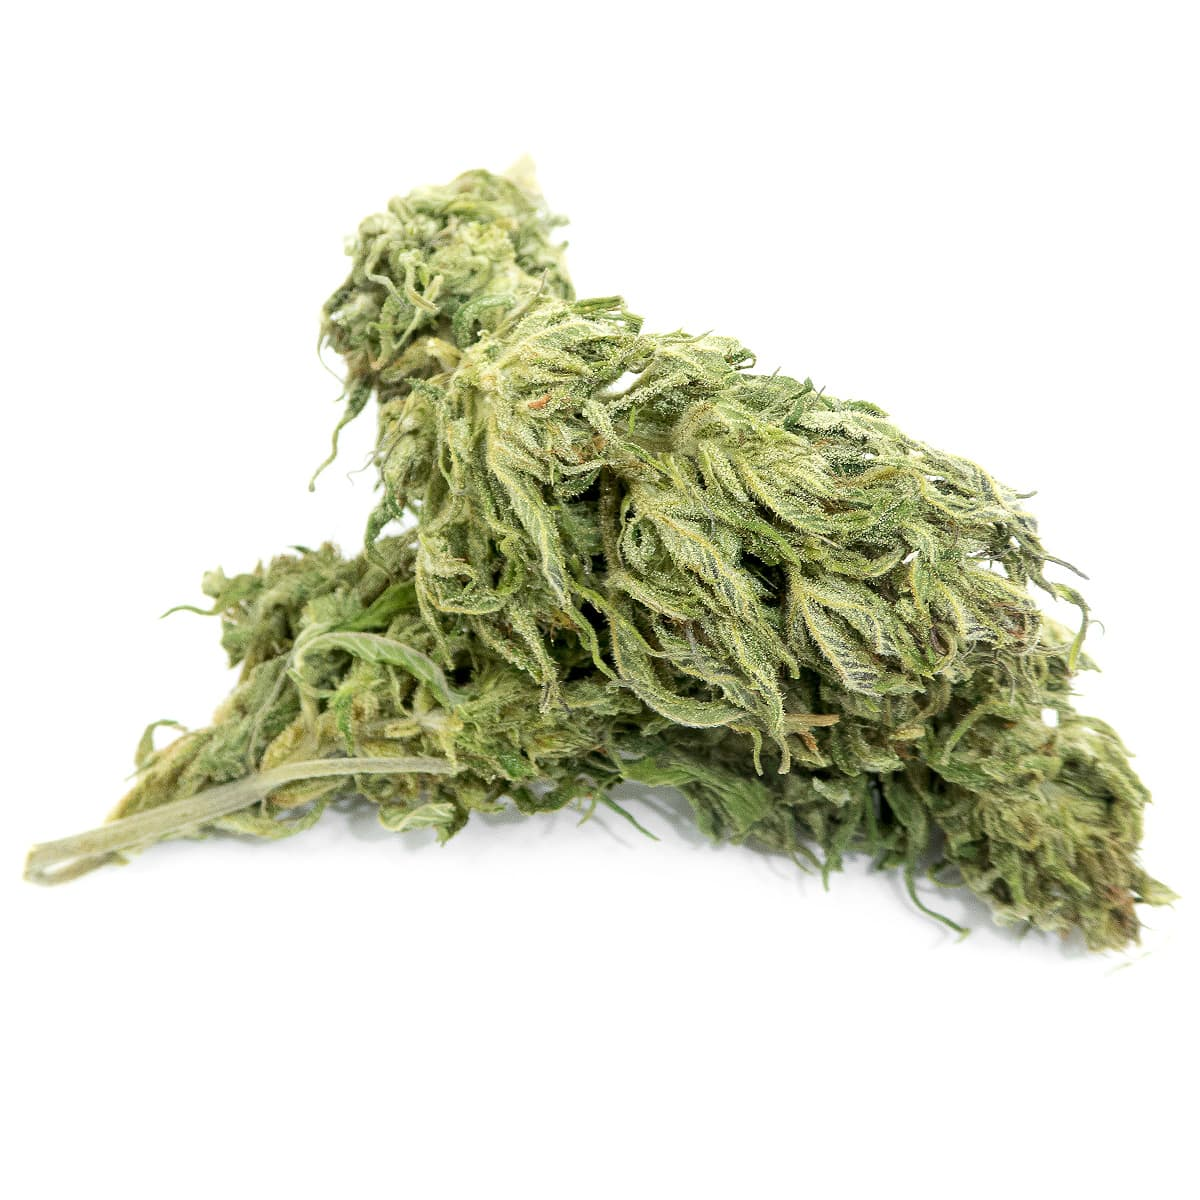 swiss-cbd-wholesale-legal-cannabis-light-indoor-premium-weed-europe-delivery-felina-big.jpg